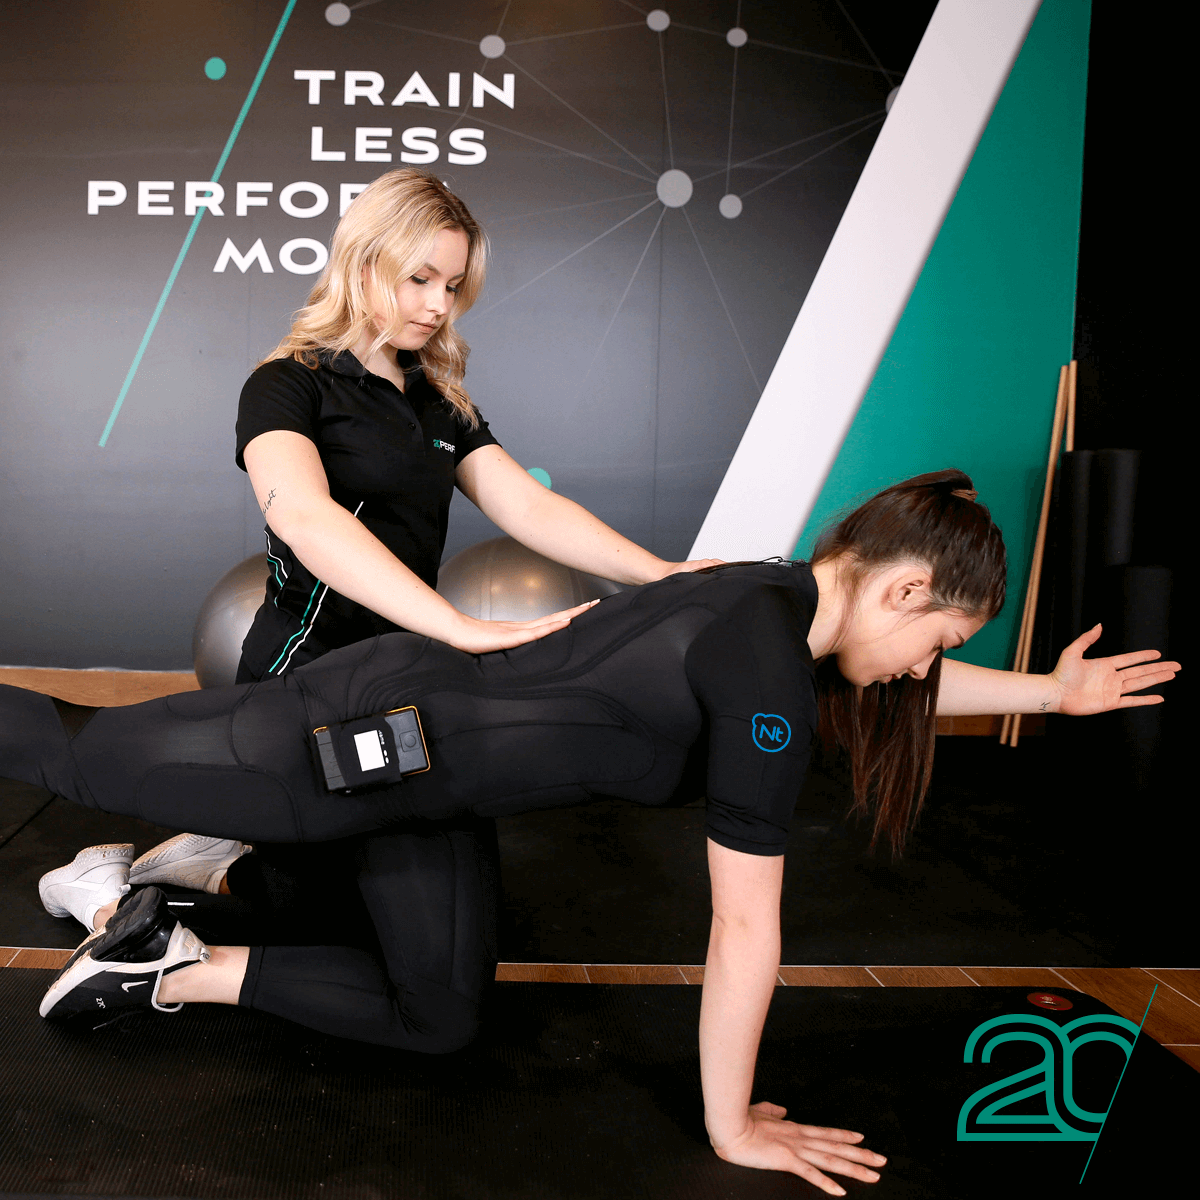 Woman Doing Core Exercises with the Help of a 20PerFit Personal Trainer